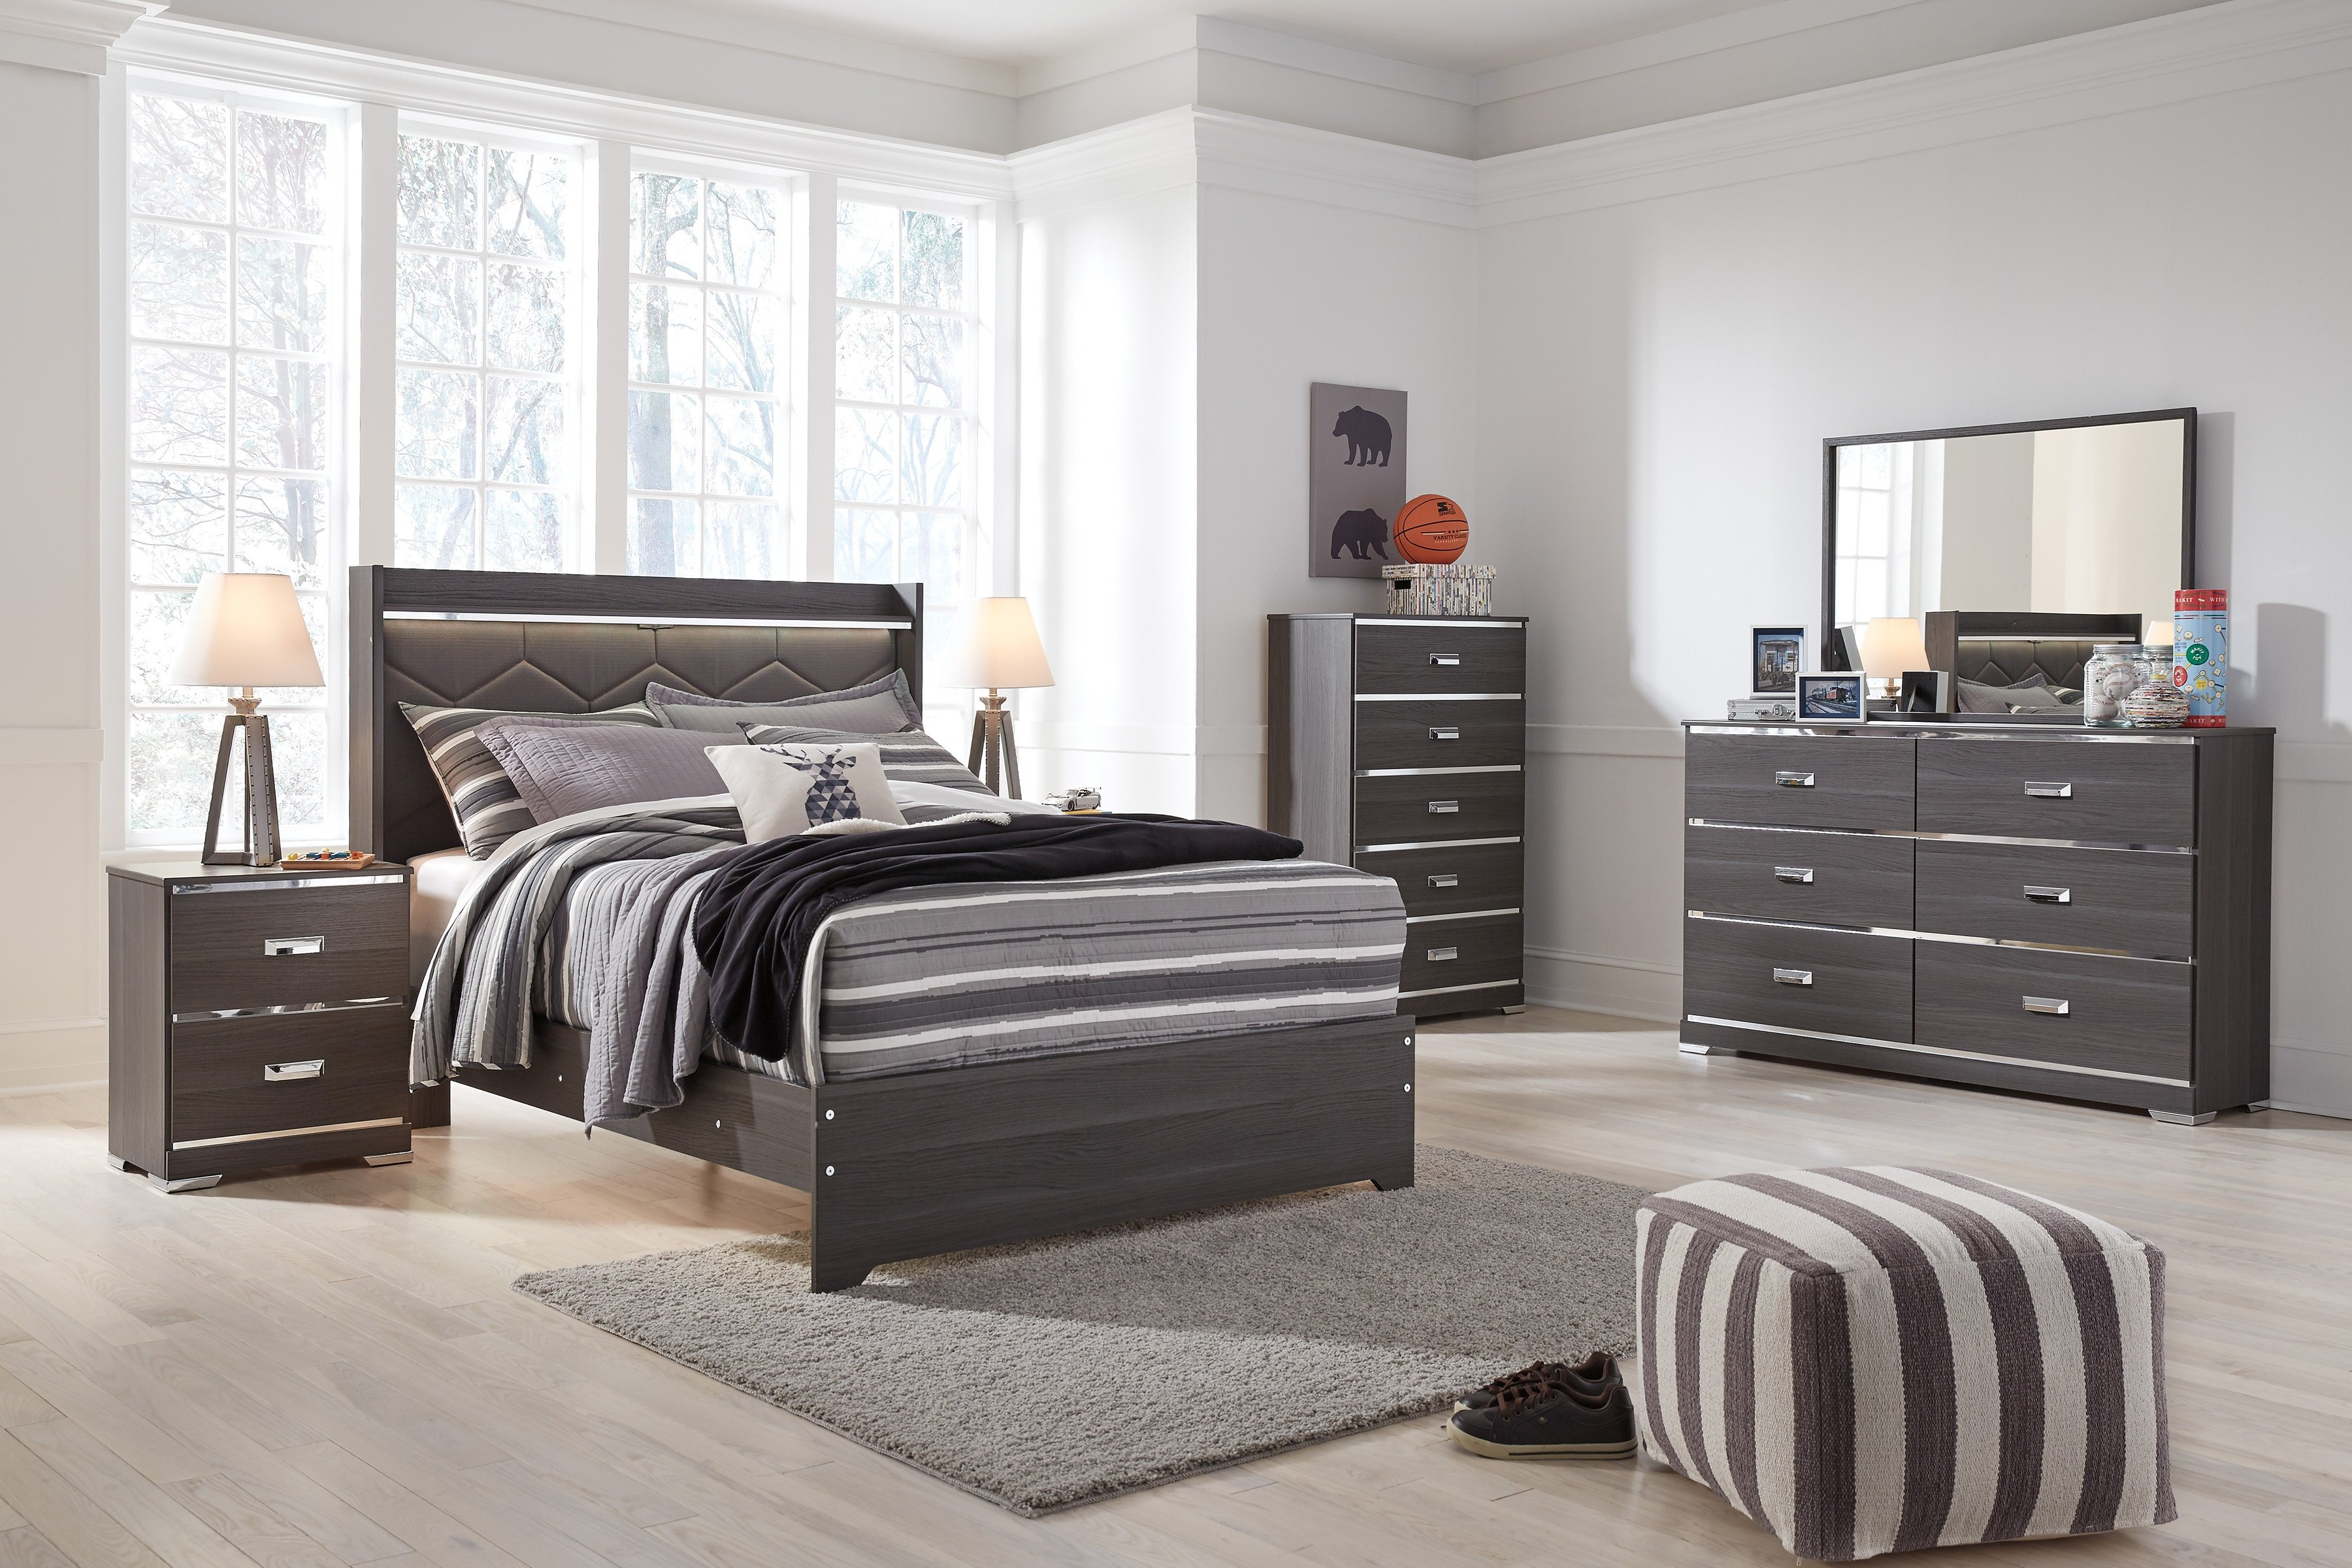 B132 Annikus Bedroom Set